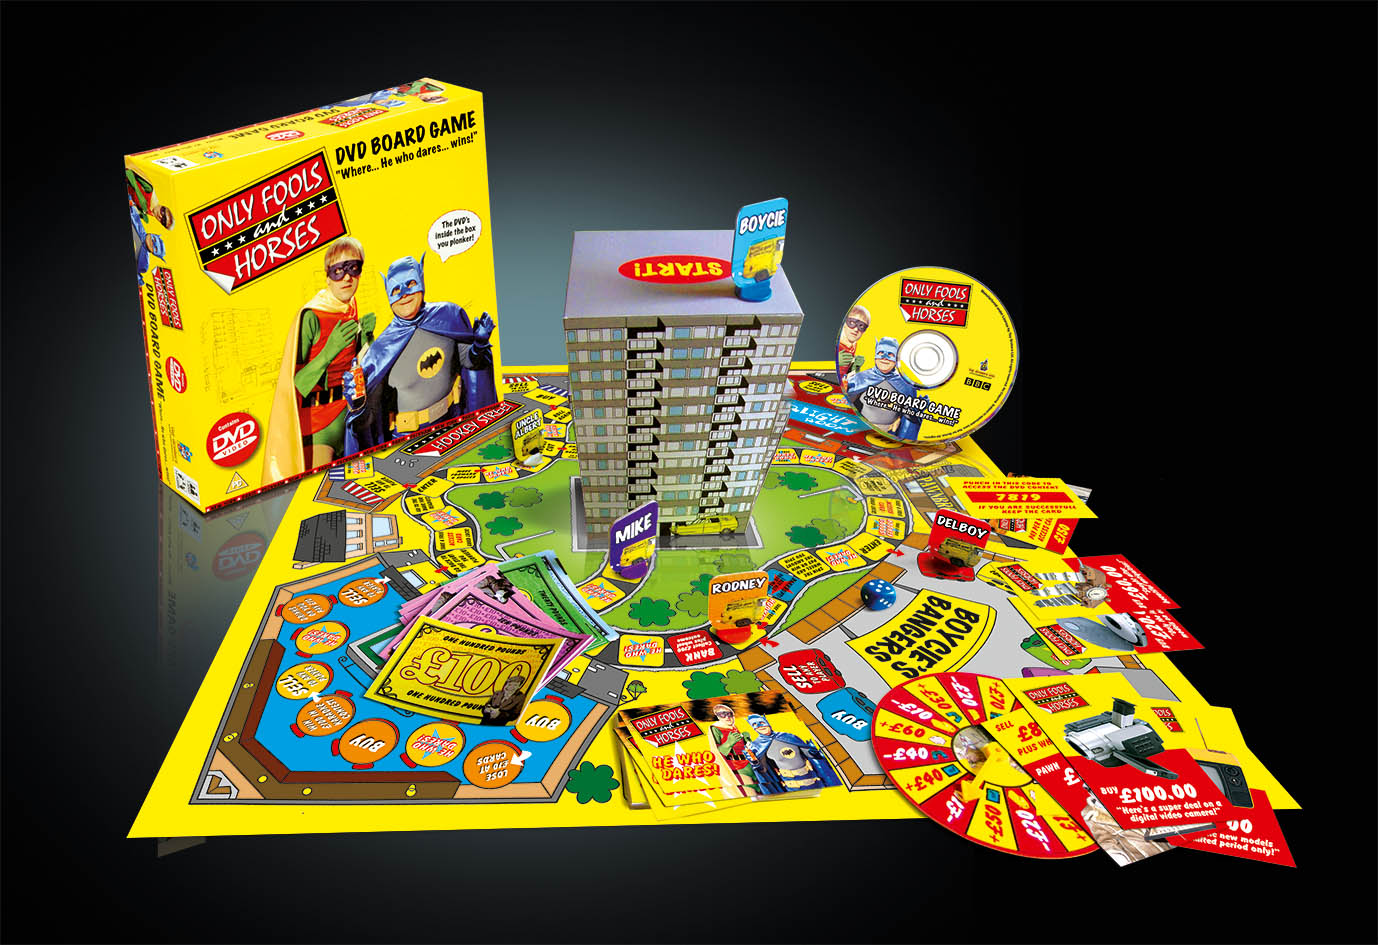 Only Fools & Horses DVD Board Game